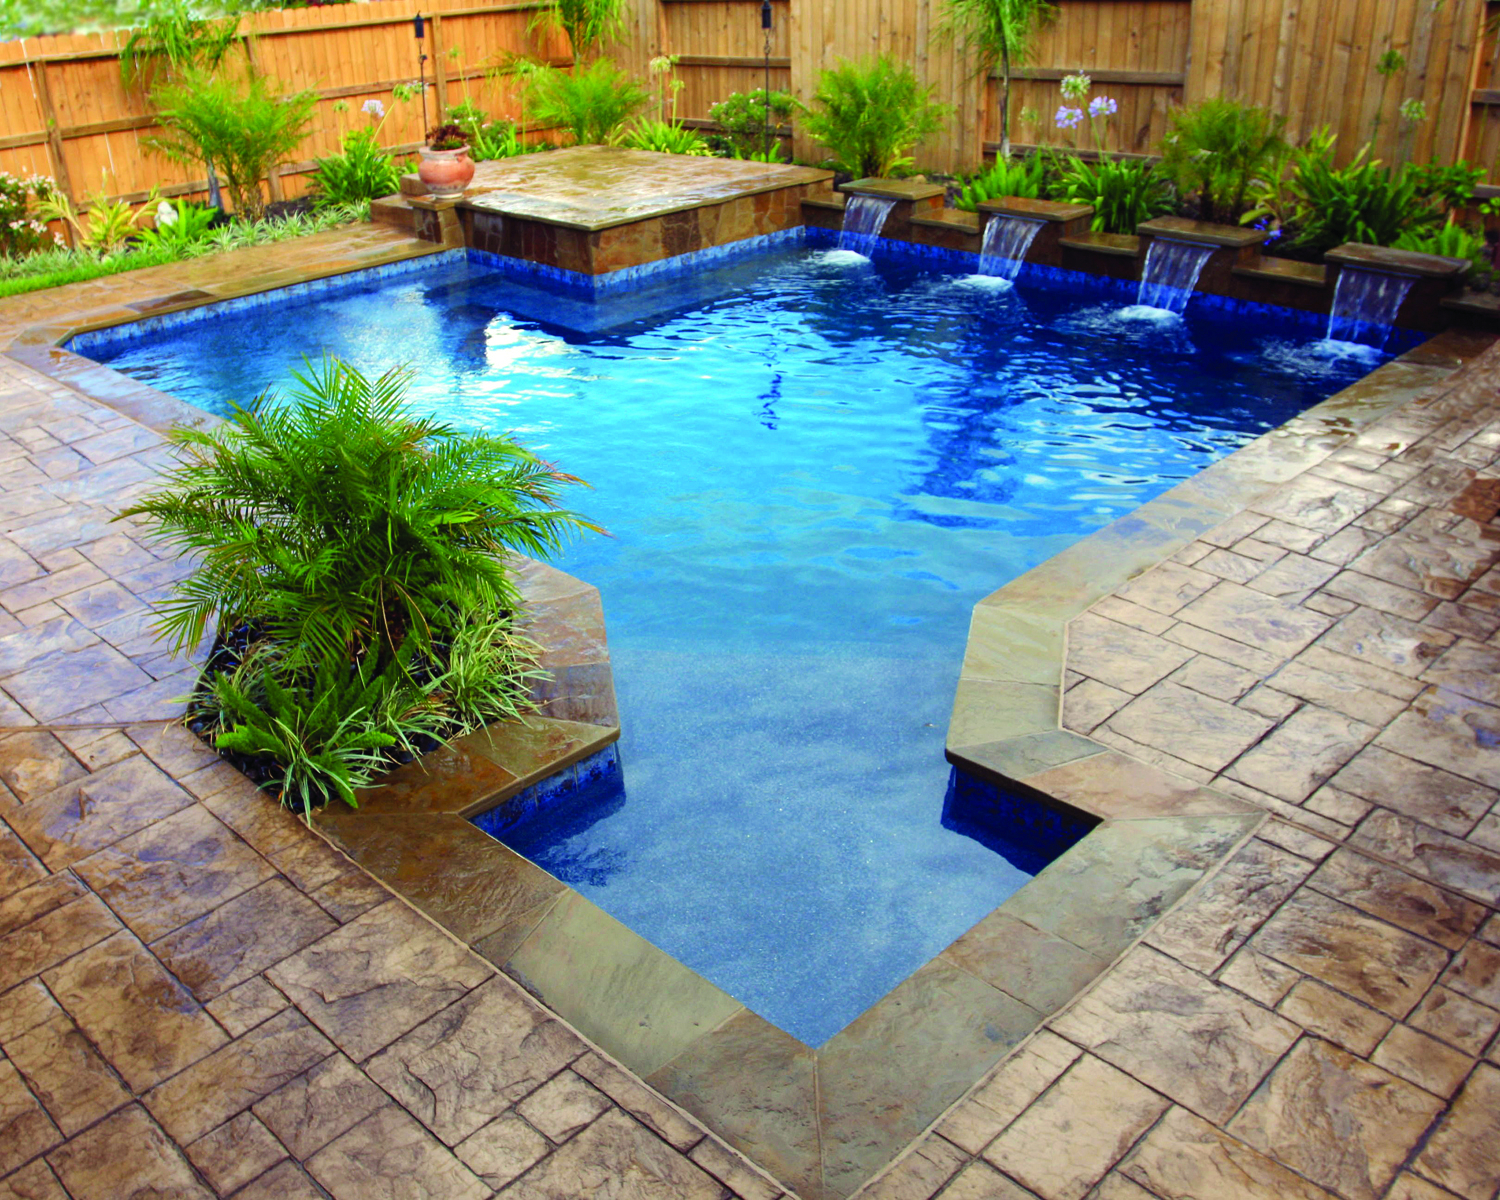 Cool Fort Bend Lifestyles & Homes Magazine Richards Total Backyard inside Richard's Total Backyard Solutions